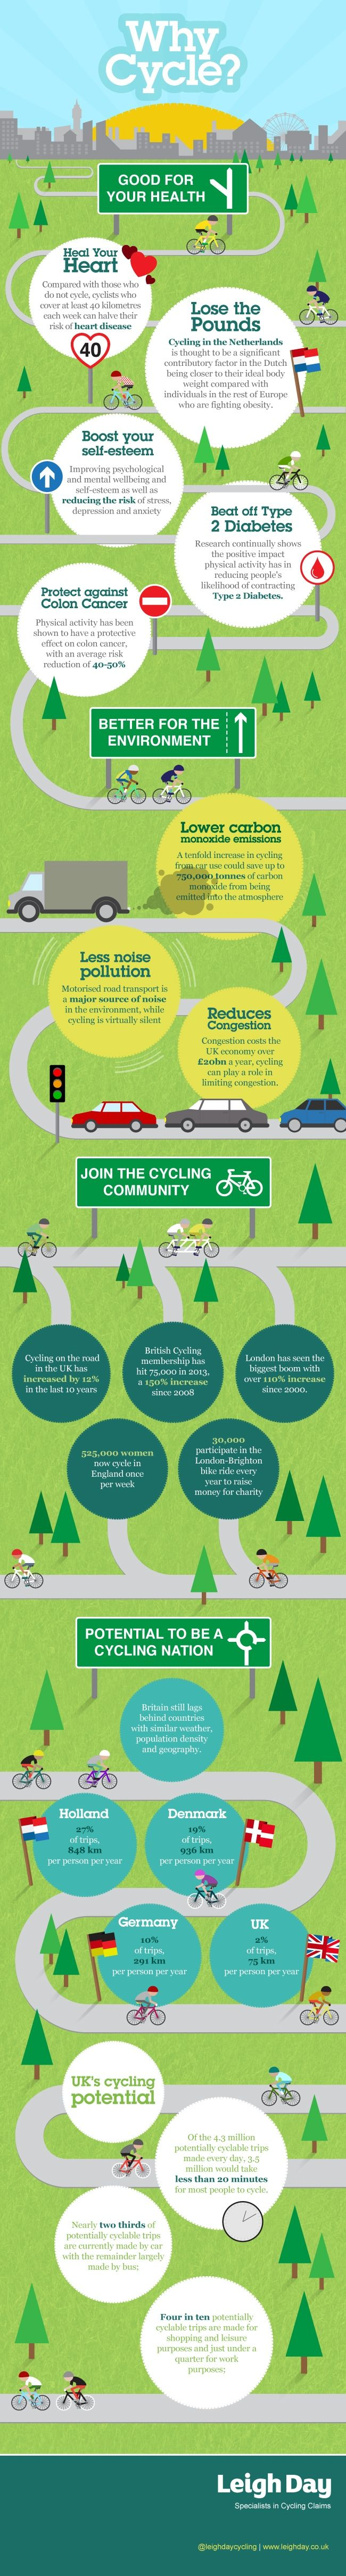 Britain really is a cycling nation. With the second win in a row in the Tour de France and countless medals on the track, we can confidently say we produce the greatest cyclists in the World. There are so many reasons for everyone to start cycling, from the enormous health benefits to the good it does for the environment.   Here are just a few very good reasons for getting on your bike.